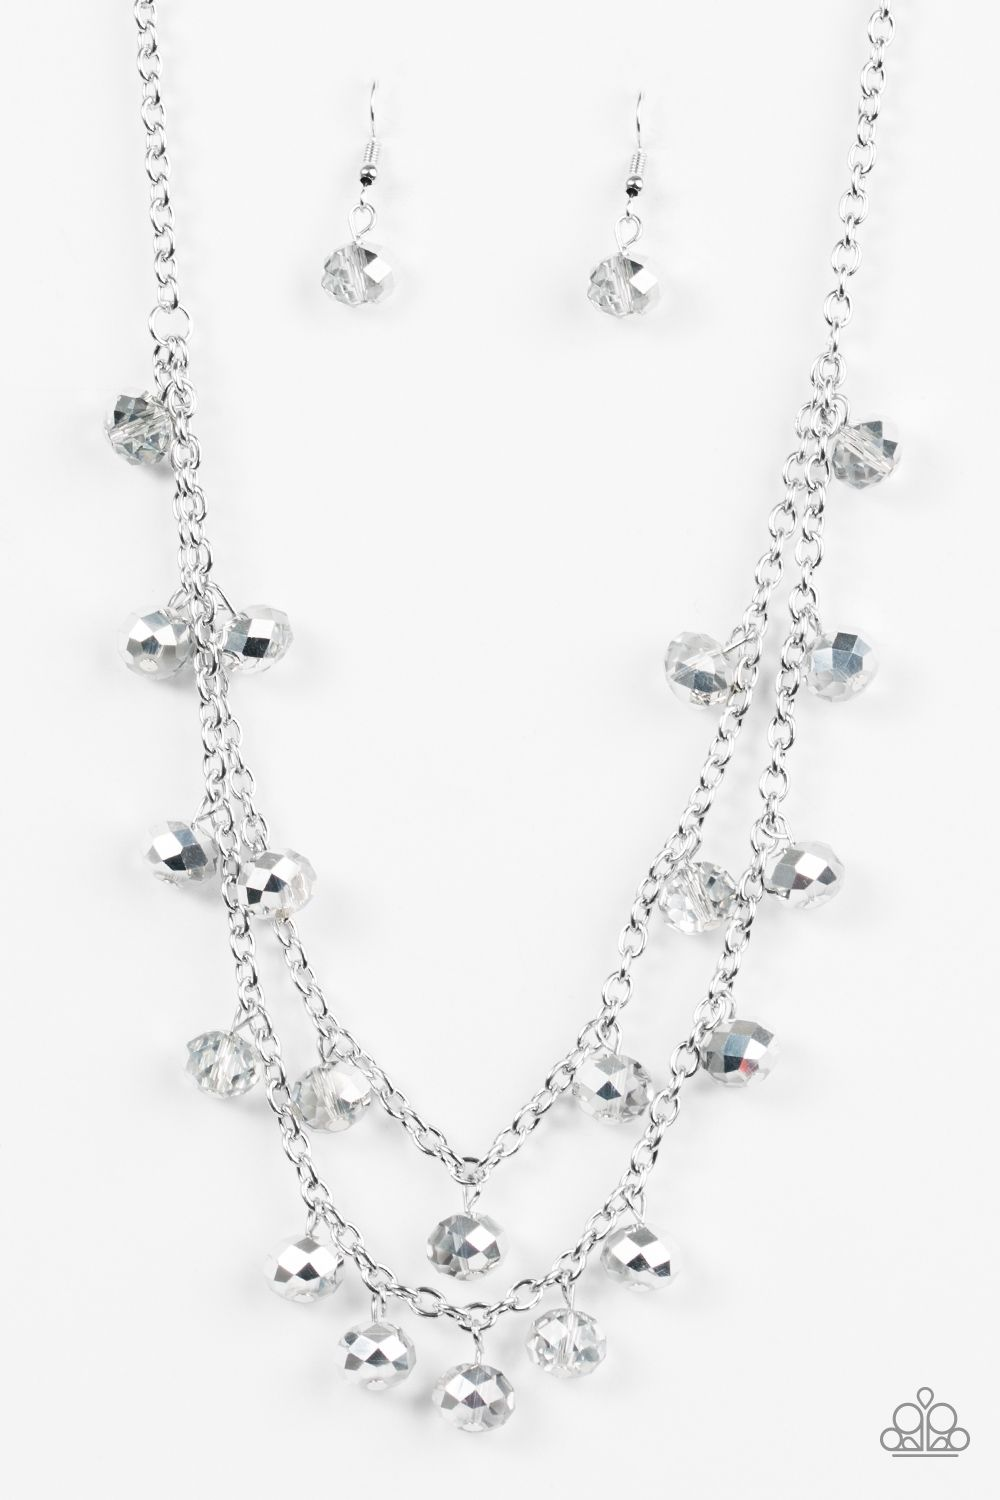 Super Supernova - Silver Necklace Set 💞 ONLY  5💞 💍Lead and Nickel  Free!💎 www.razzledazzlevip.com a4496a62c60d